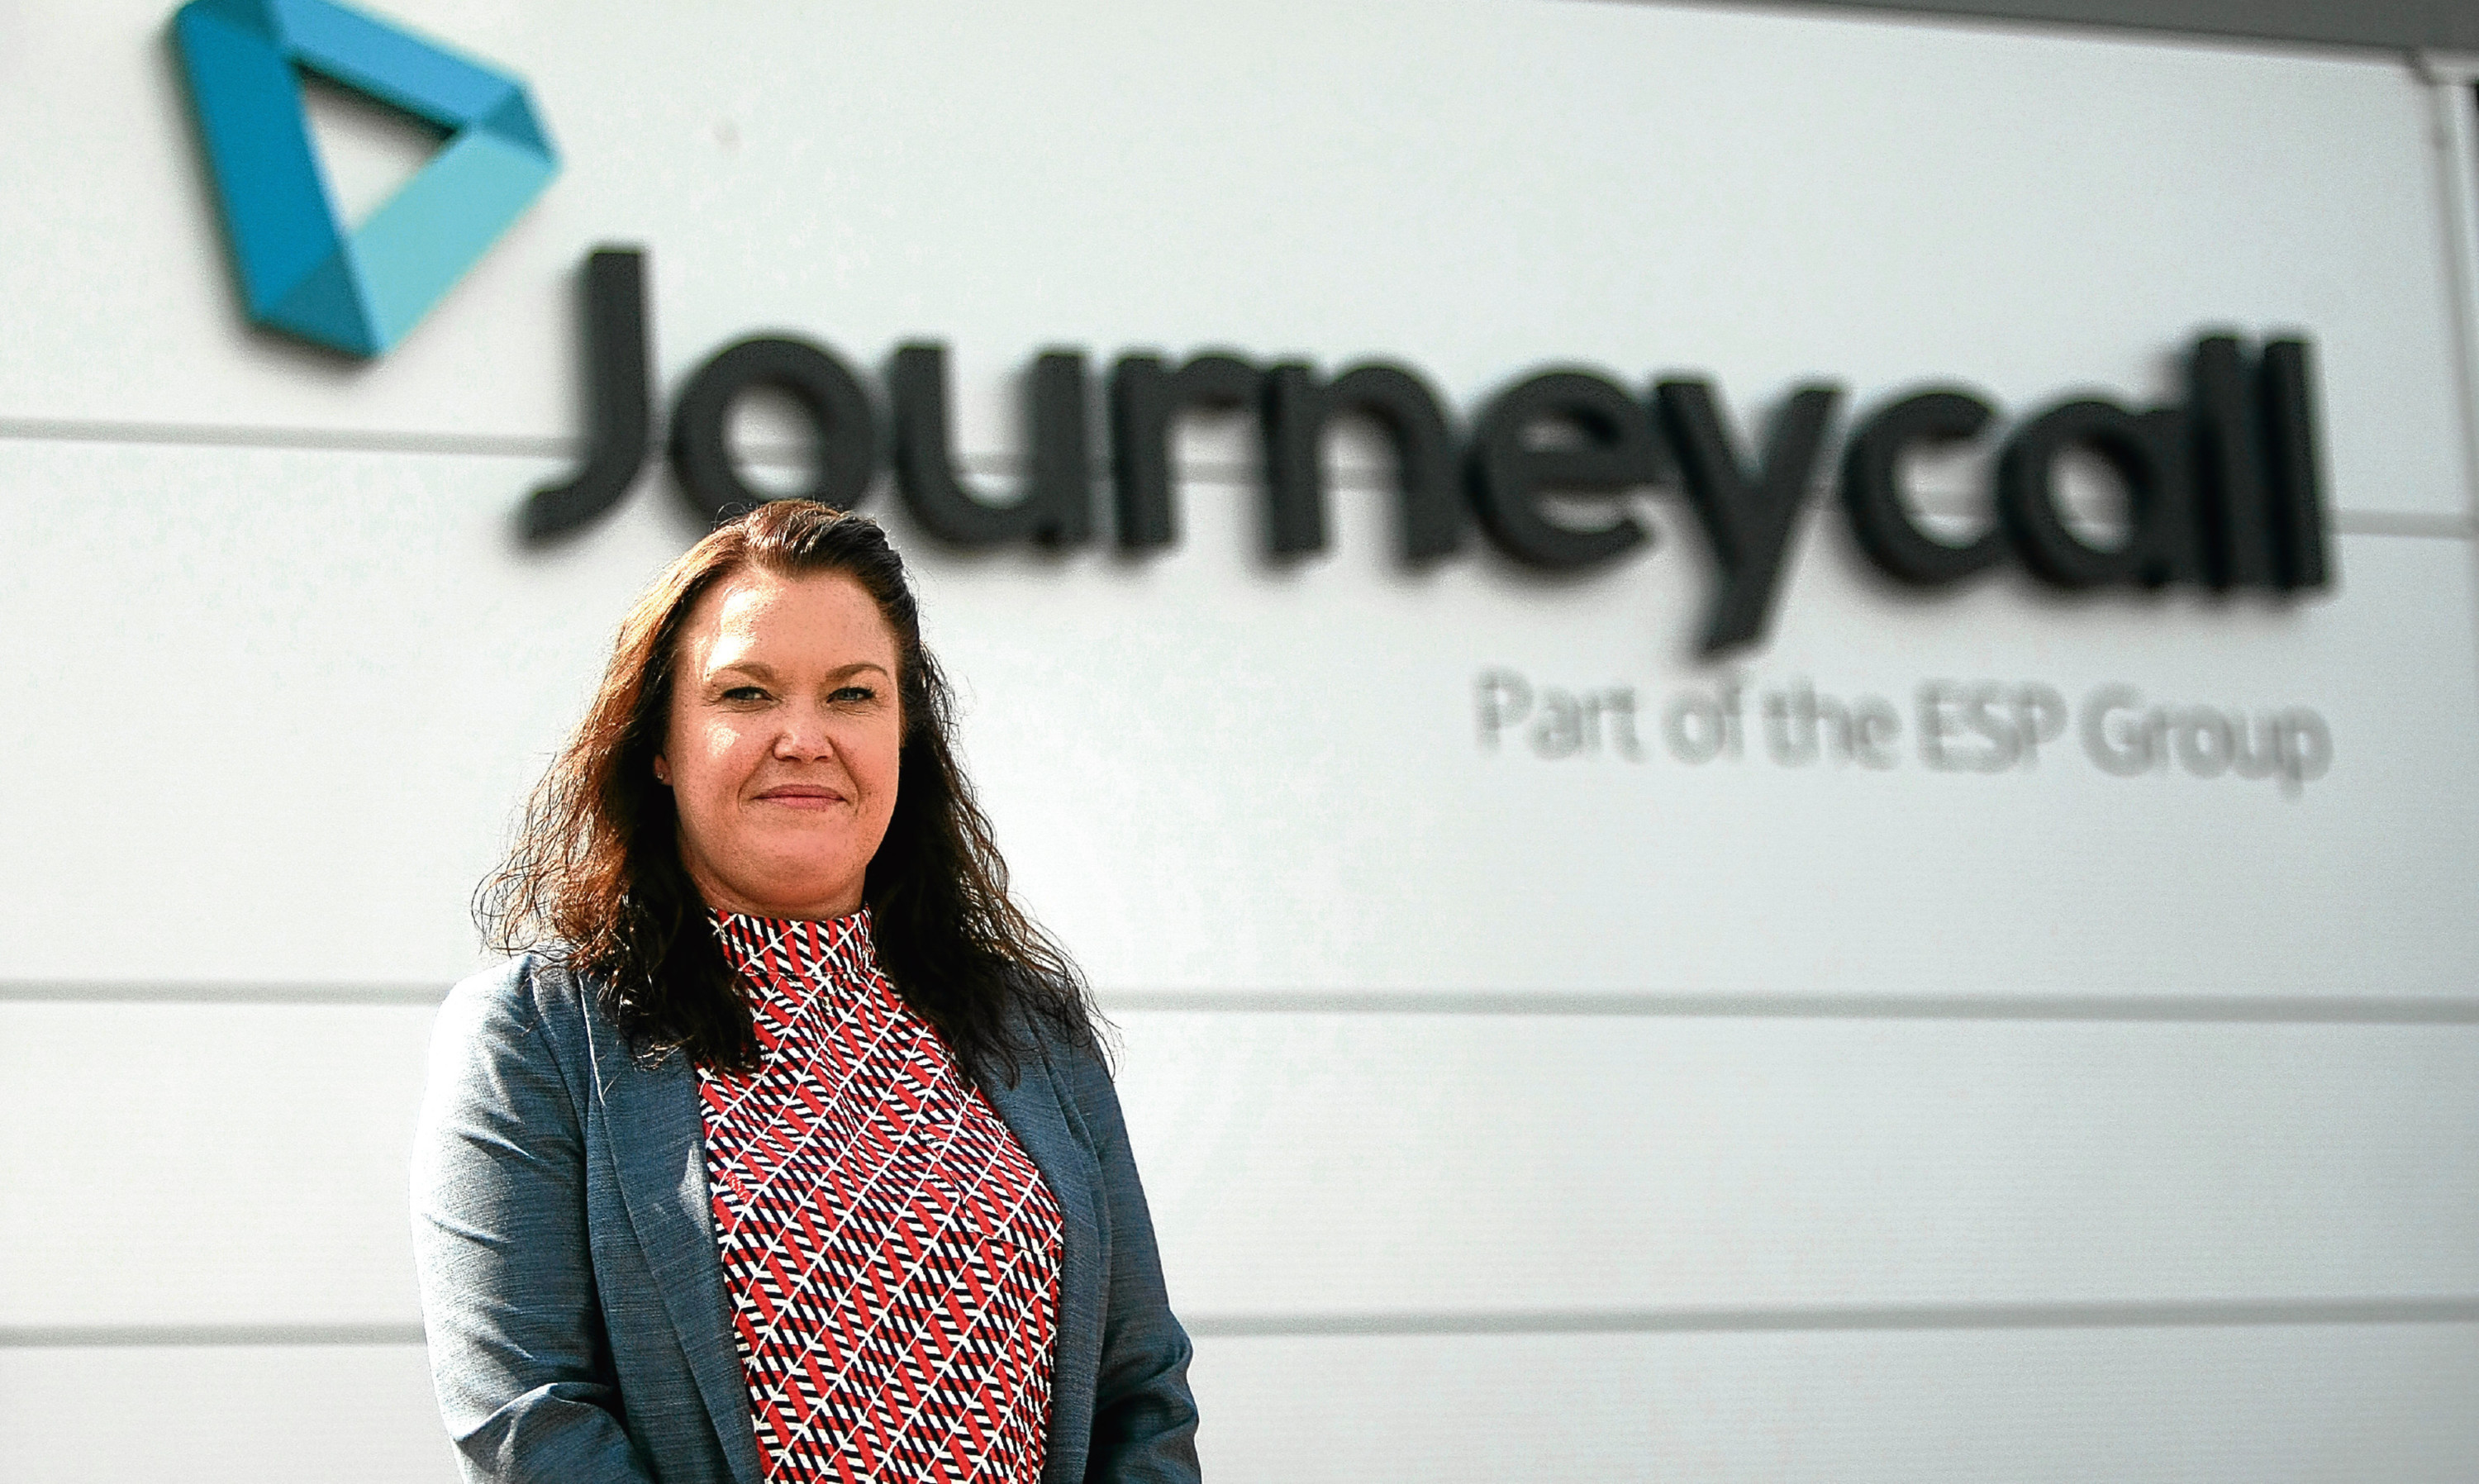 ESP chief operating officer Theresa Wishart at Journeycall in Arbroath